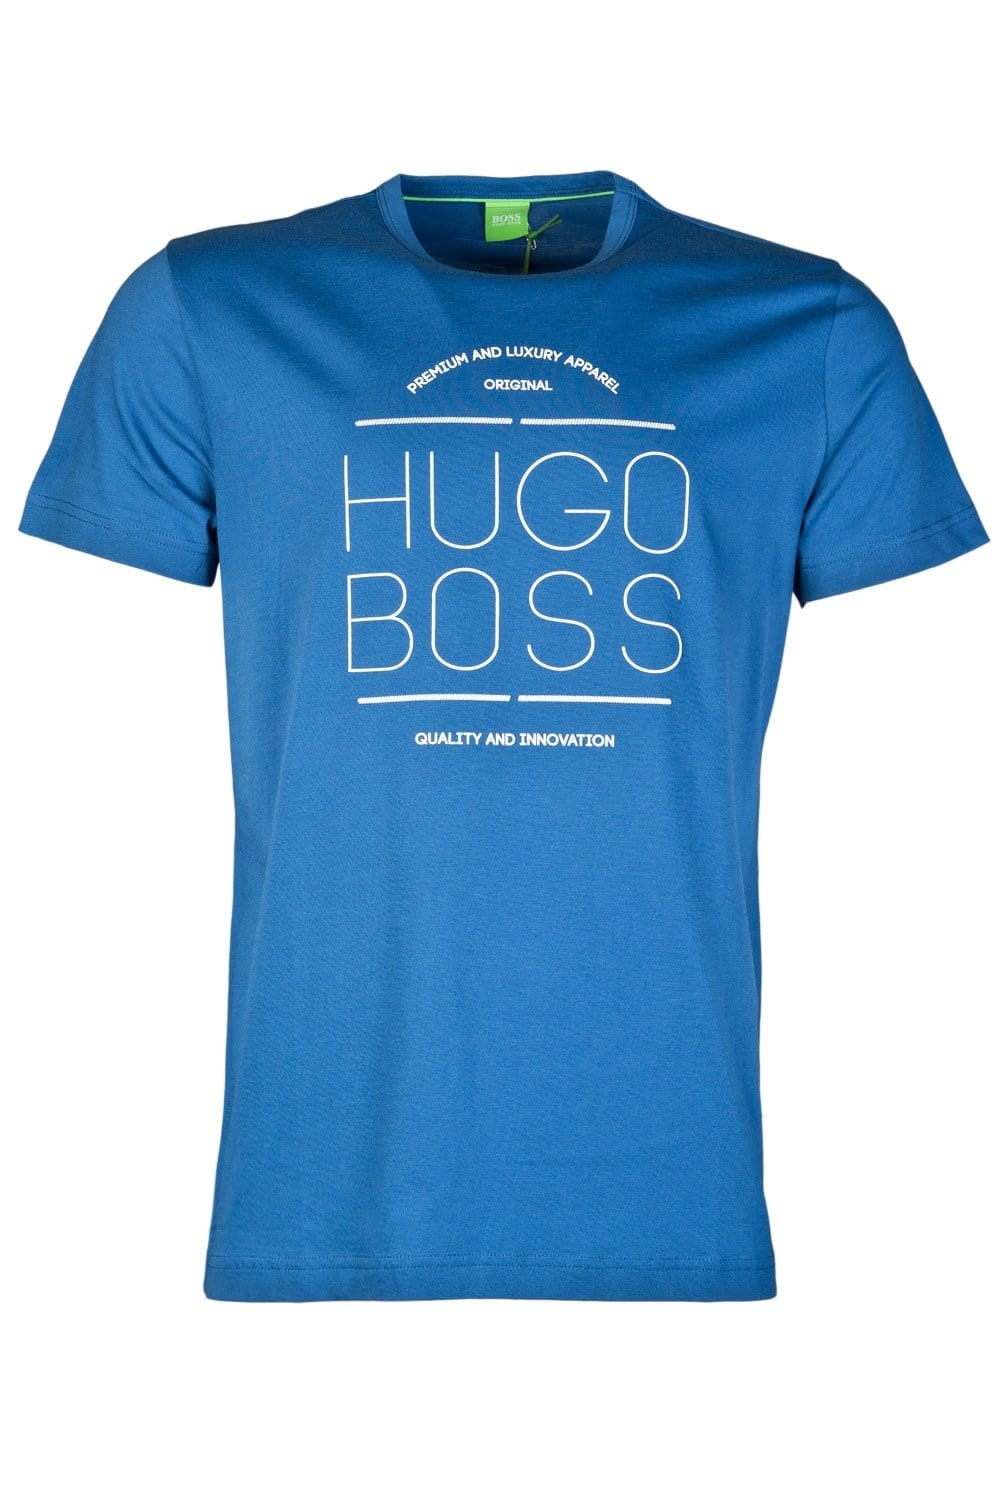 Hugo Boss Green Casual T Shirt In Black And Royal Blue Tee